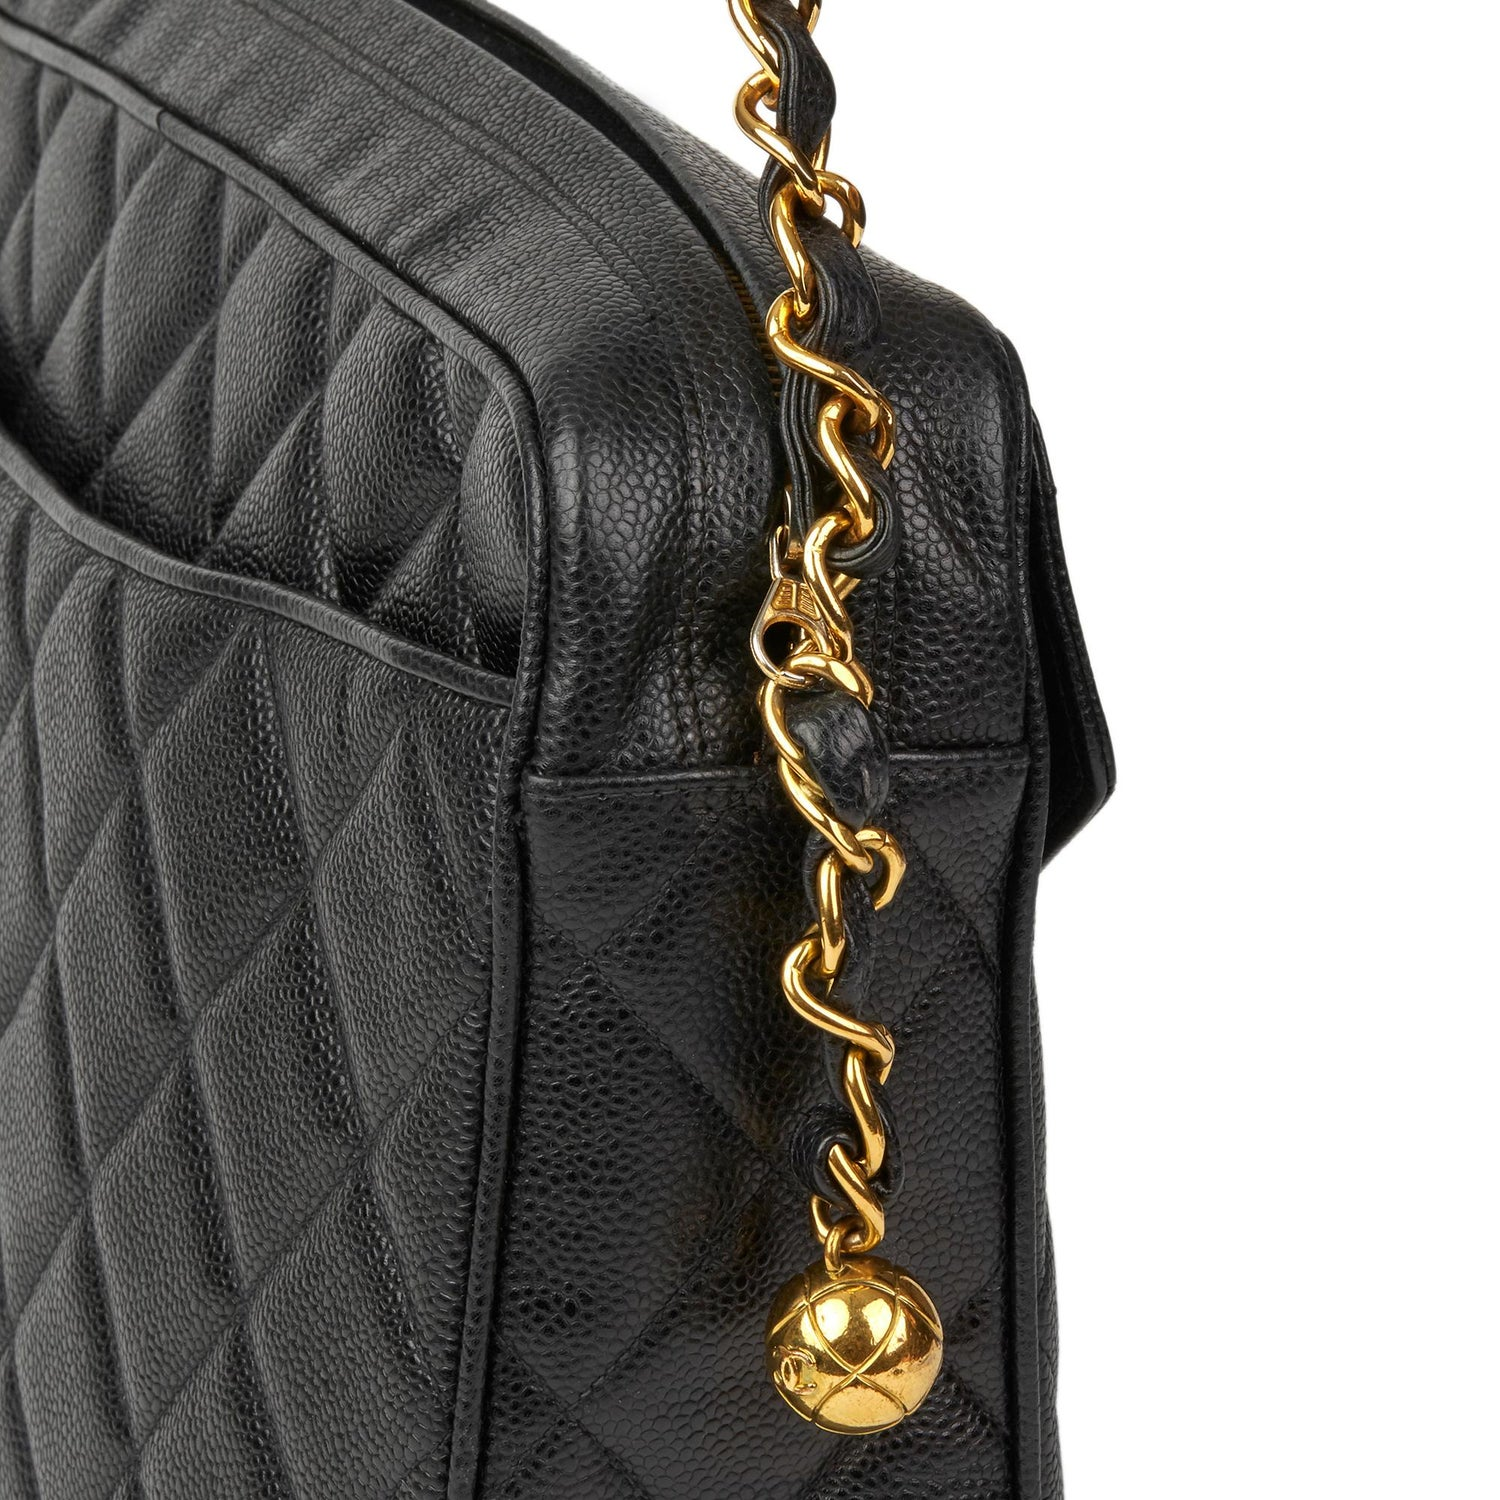 37dae2f1dda8 1994 Chanel Black Quilted Caviar Leather Vintage Maxi Jumbo XL Camera Bag  For Sale at 1stdibs